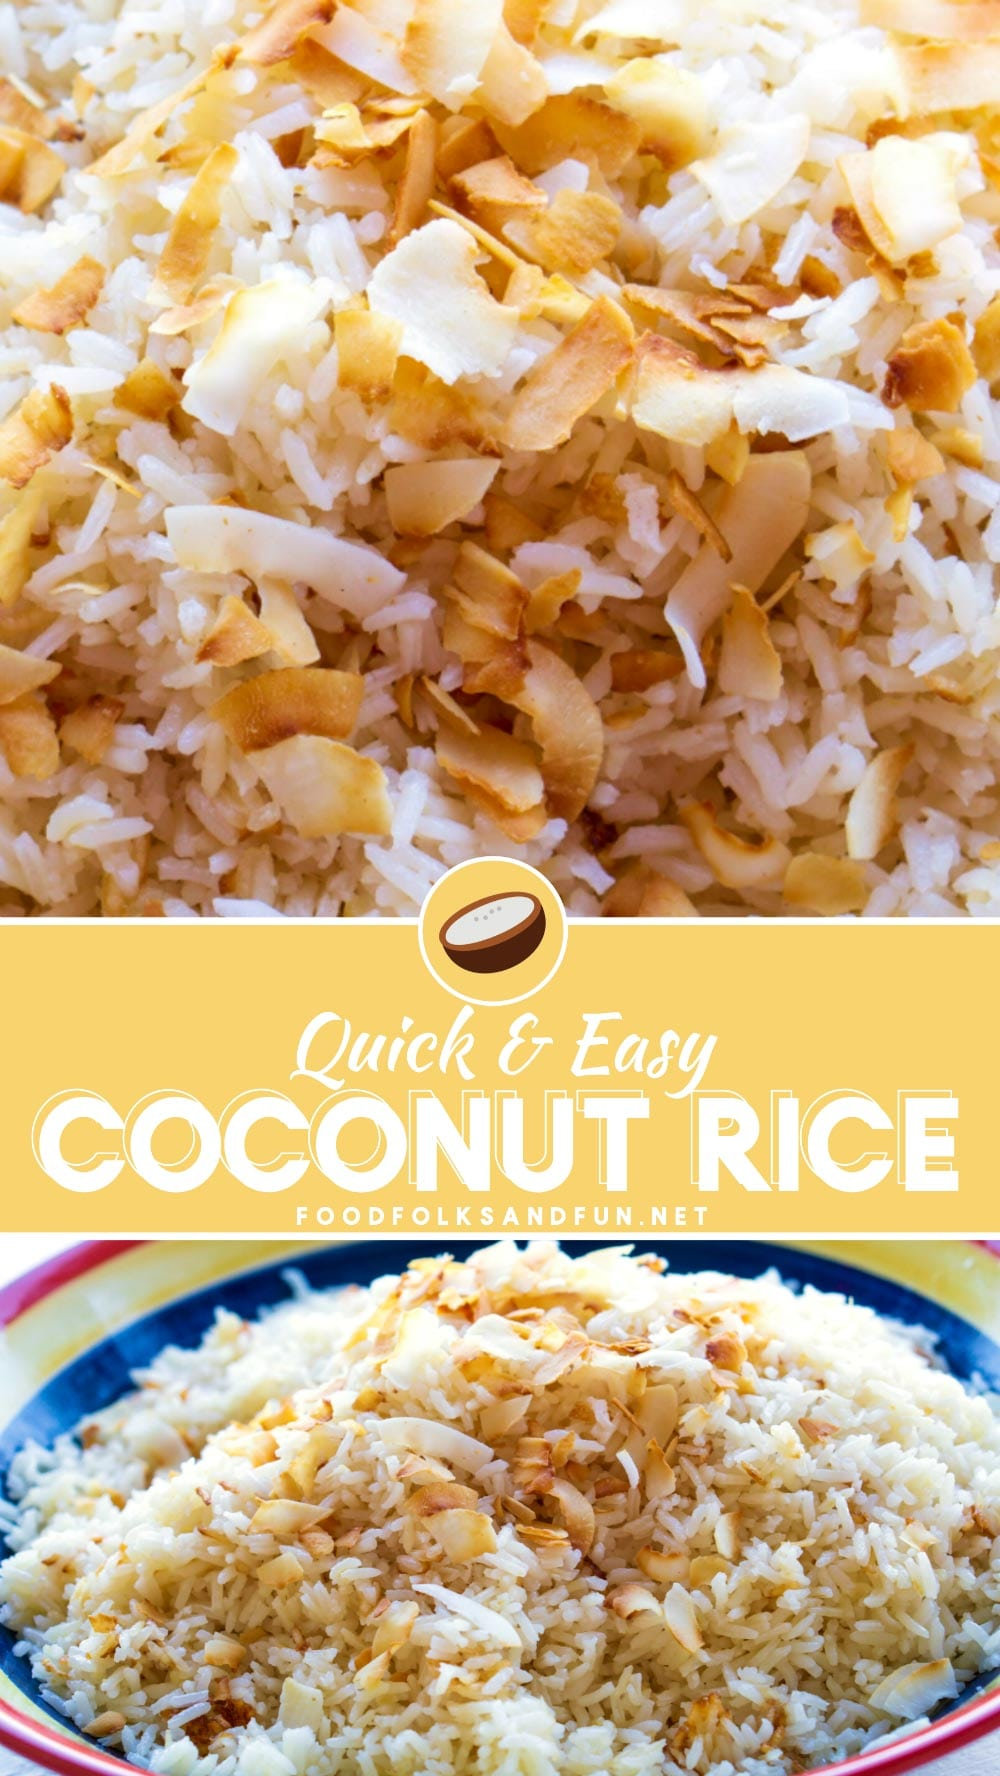 This amazing Coconut Rice recipe is so simple to make and it's so versatile, too. It's the perfect side dish for any Asian or tropical main dish. This Coconut Milk Rice is savory and slightly sweet and so addicting!  via @foodfolksandfun